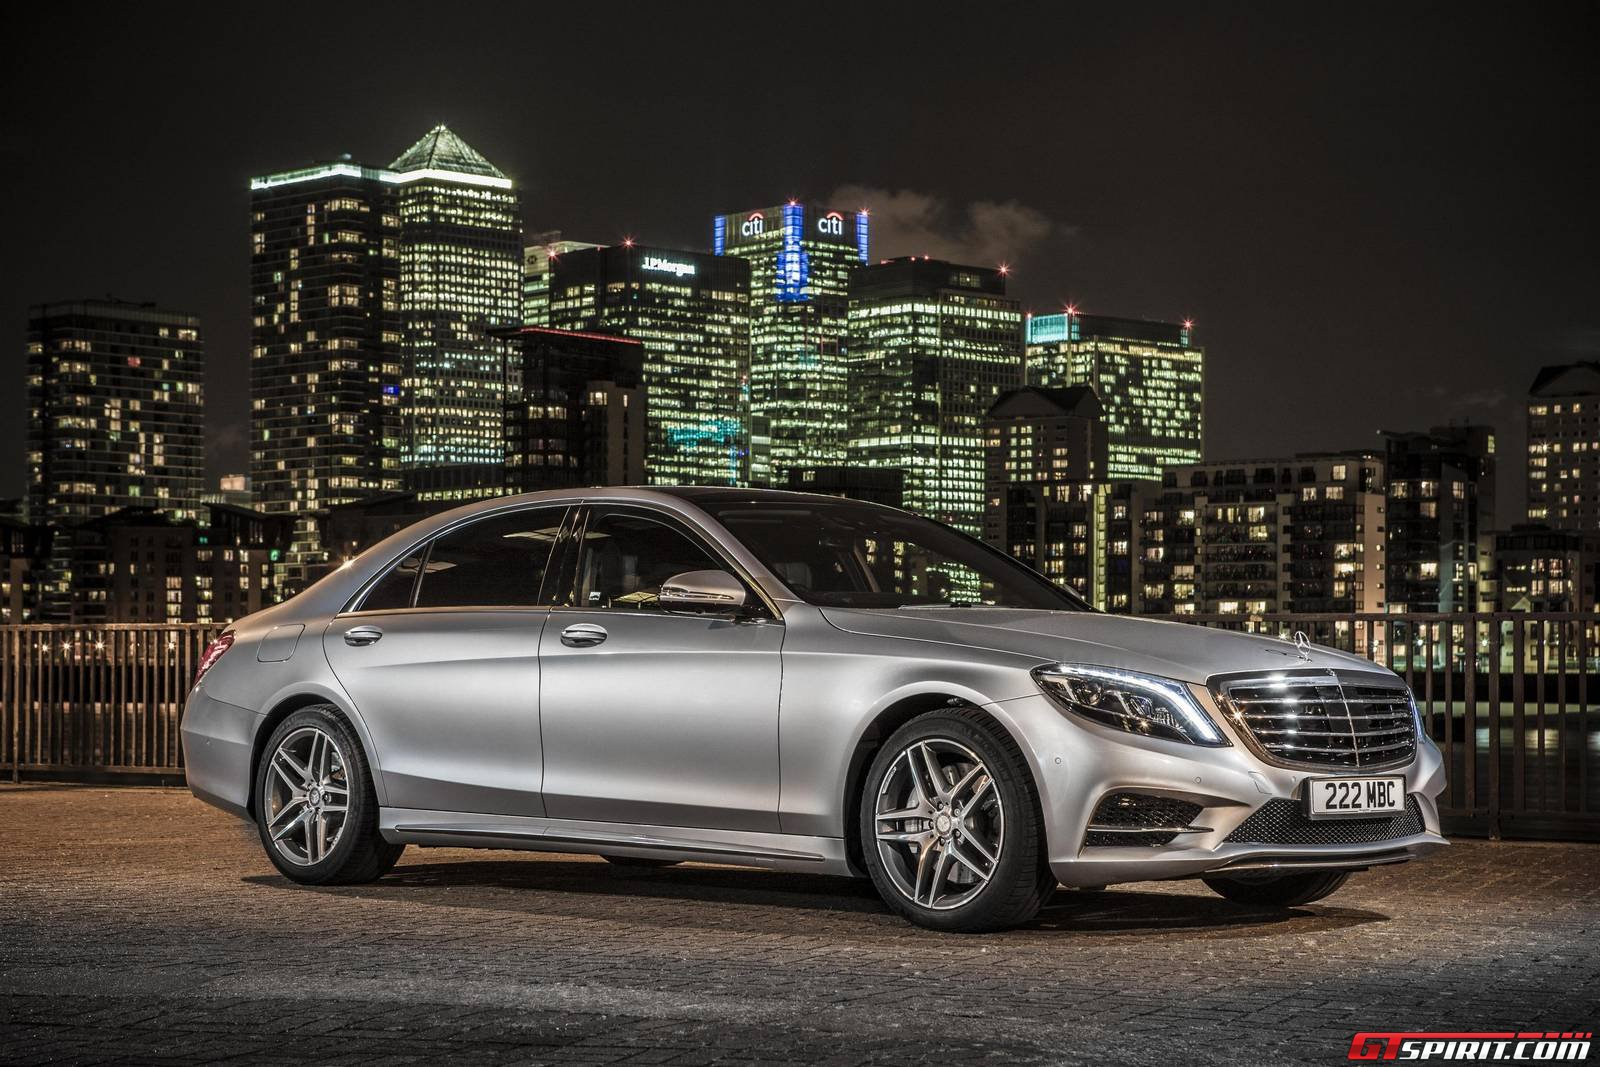 2015 Mercedes-Benz S500 Plug-in Hybrid | Video Inventory